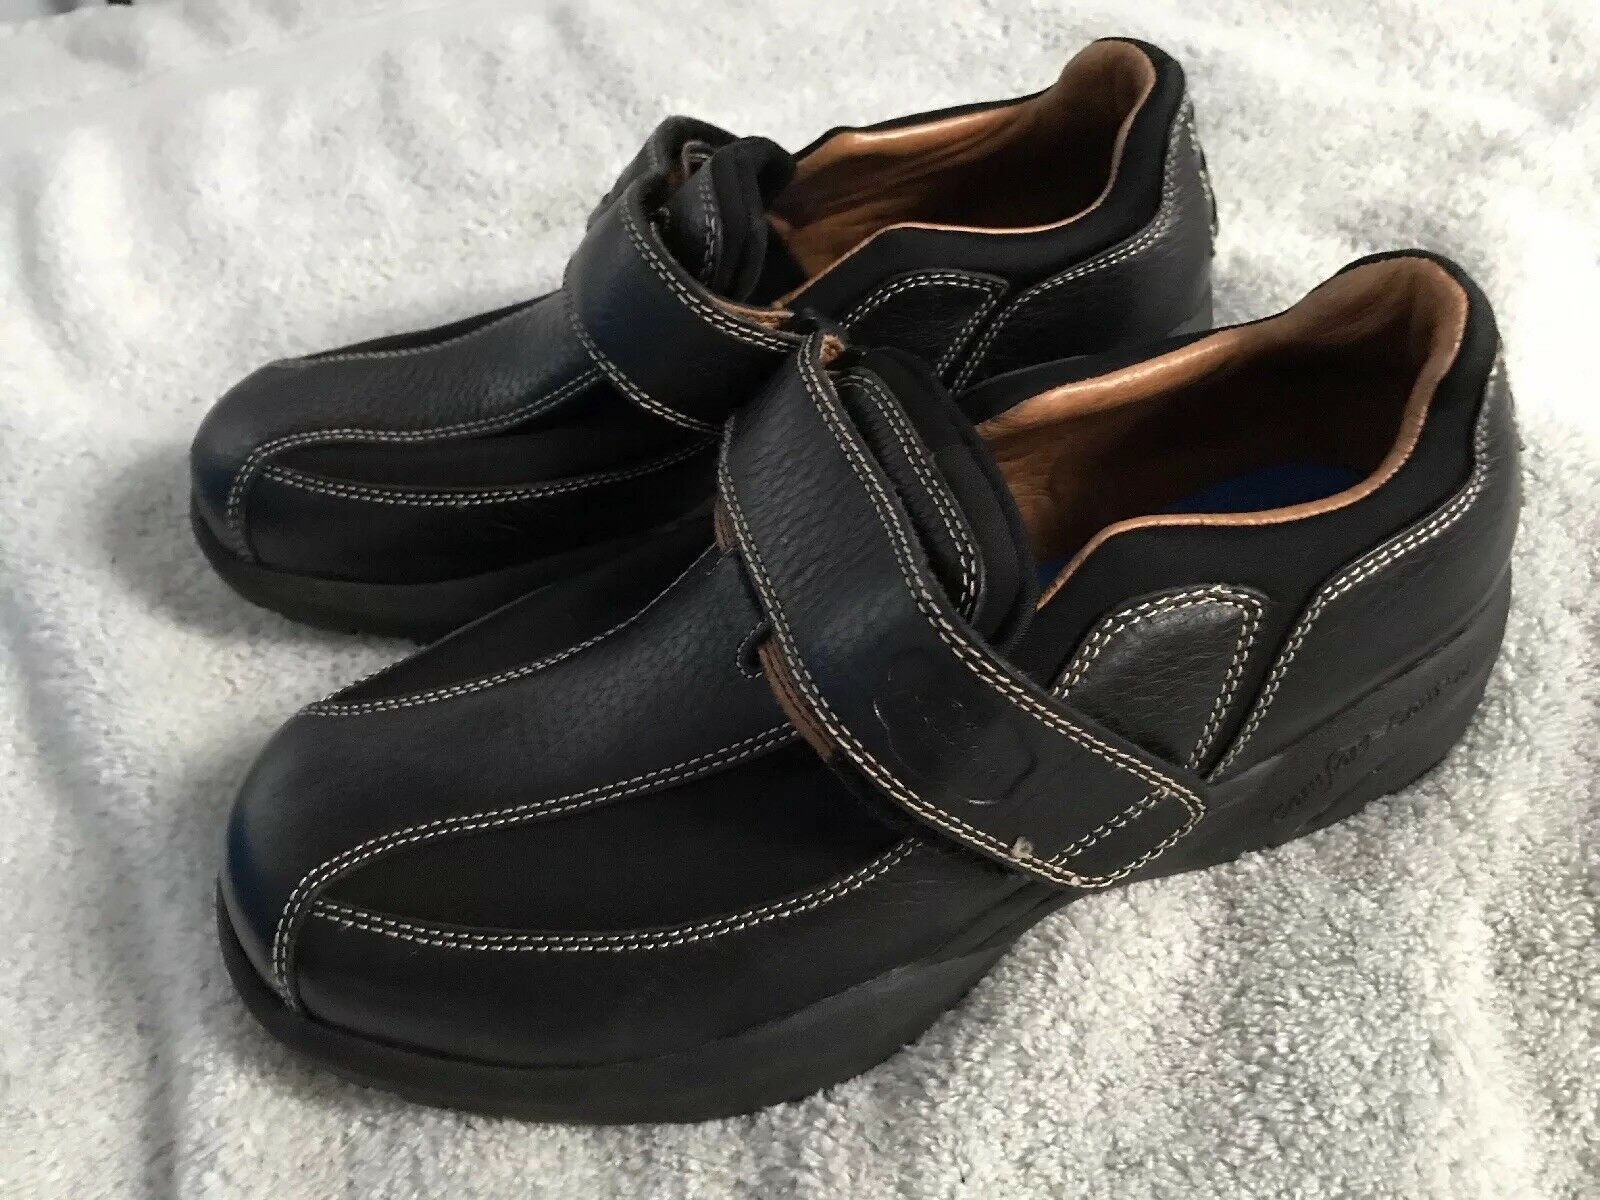 Dr Comfort Therapeutic Donna Nero Suede/Pelle Slip On Shoes Size 6.5W SC8